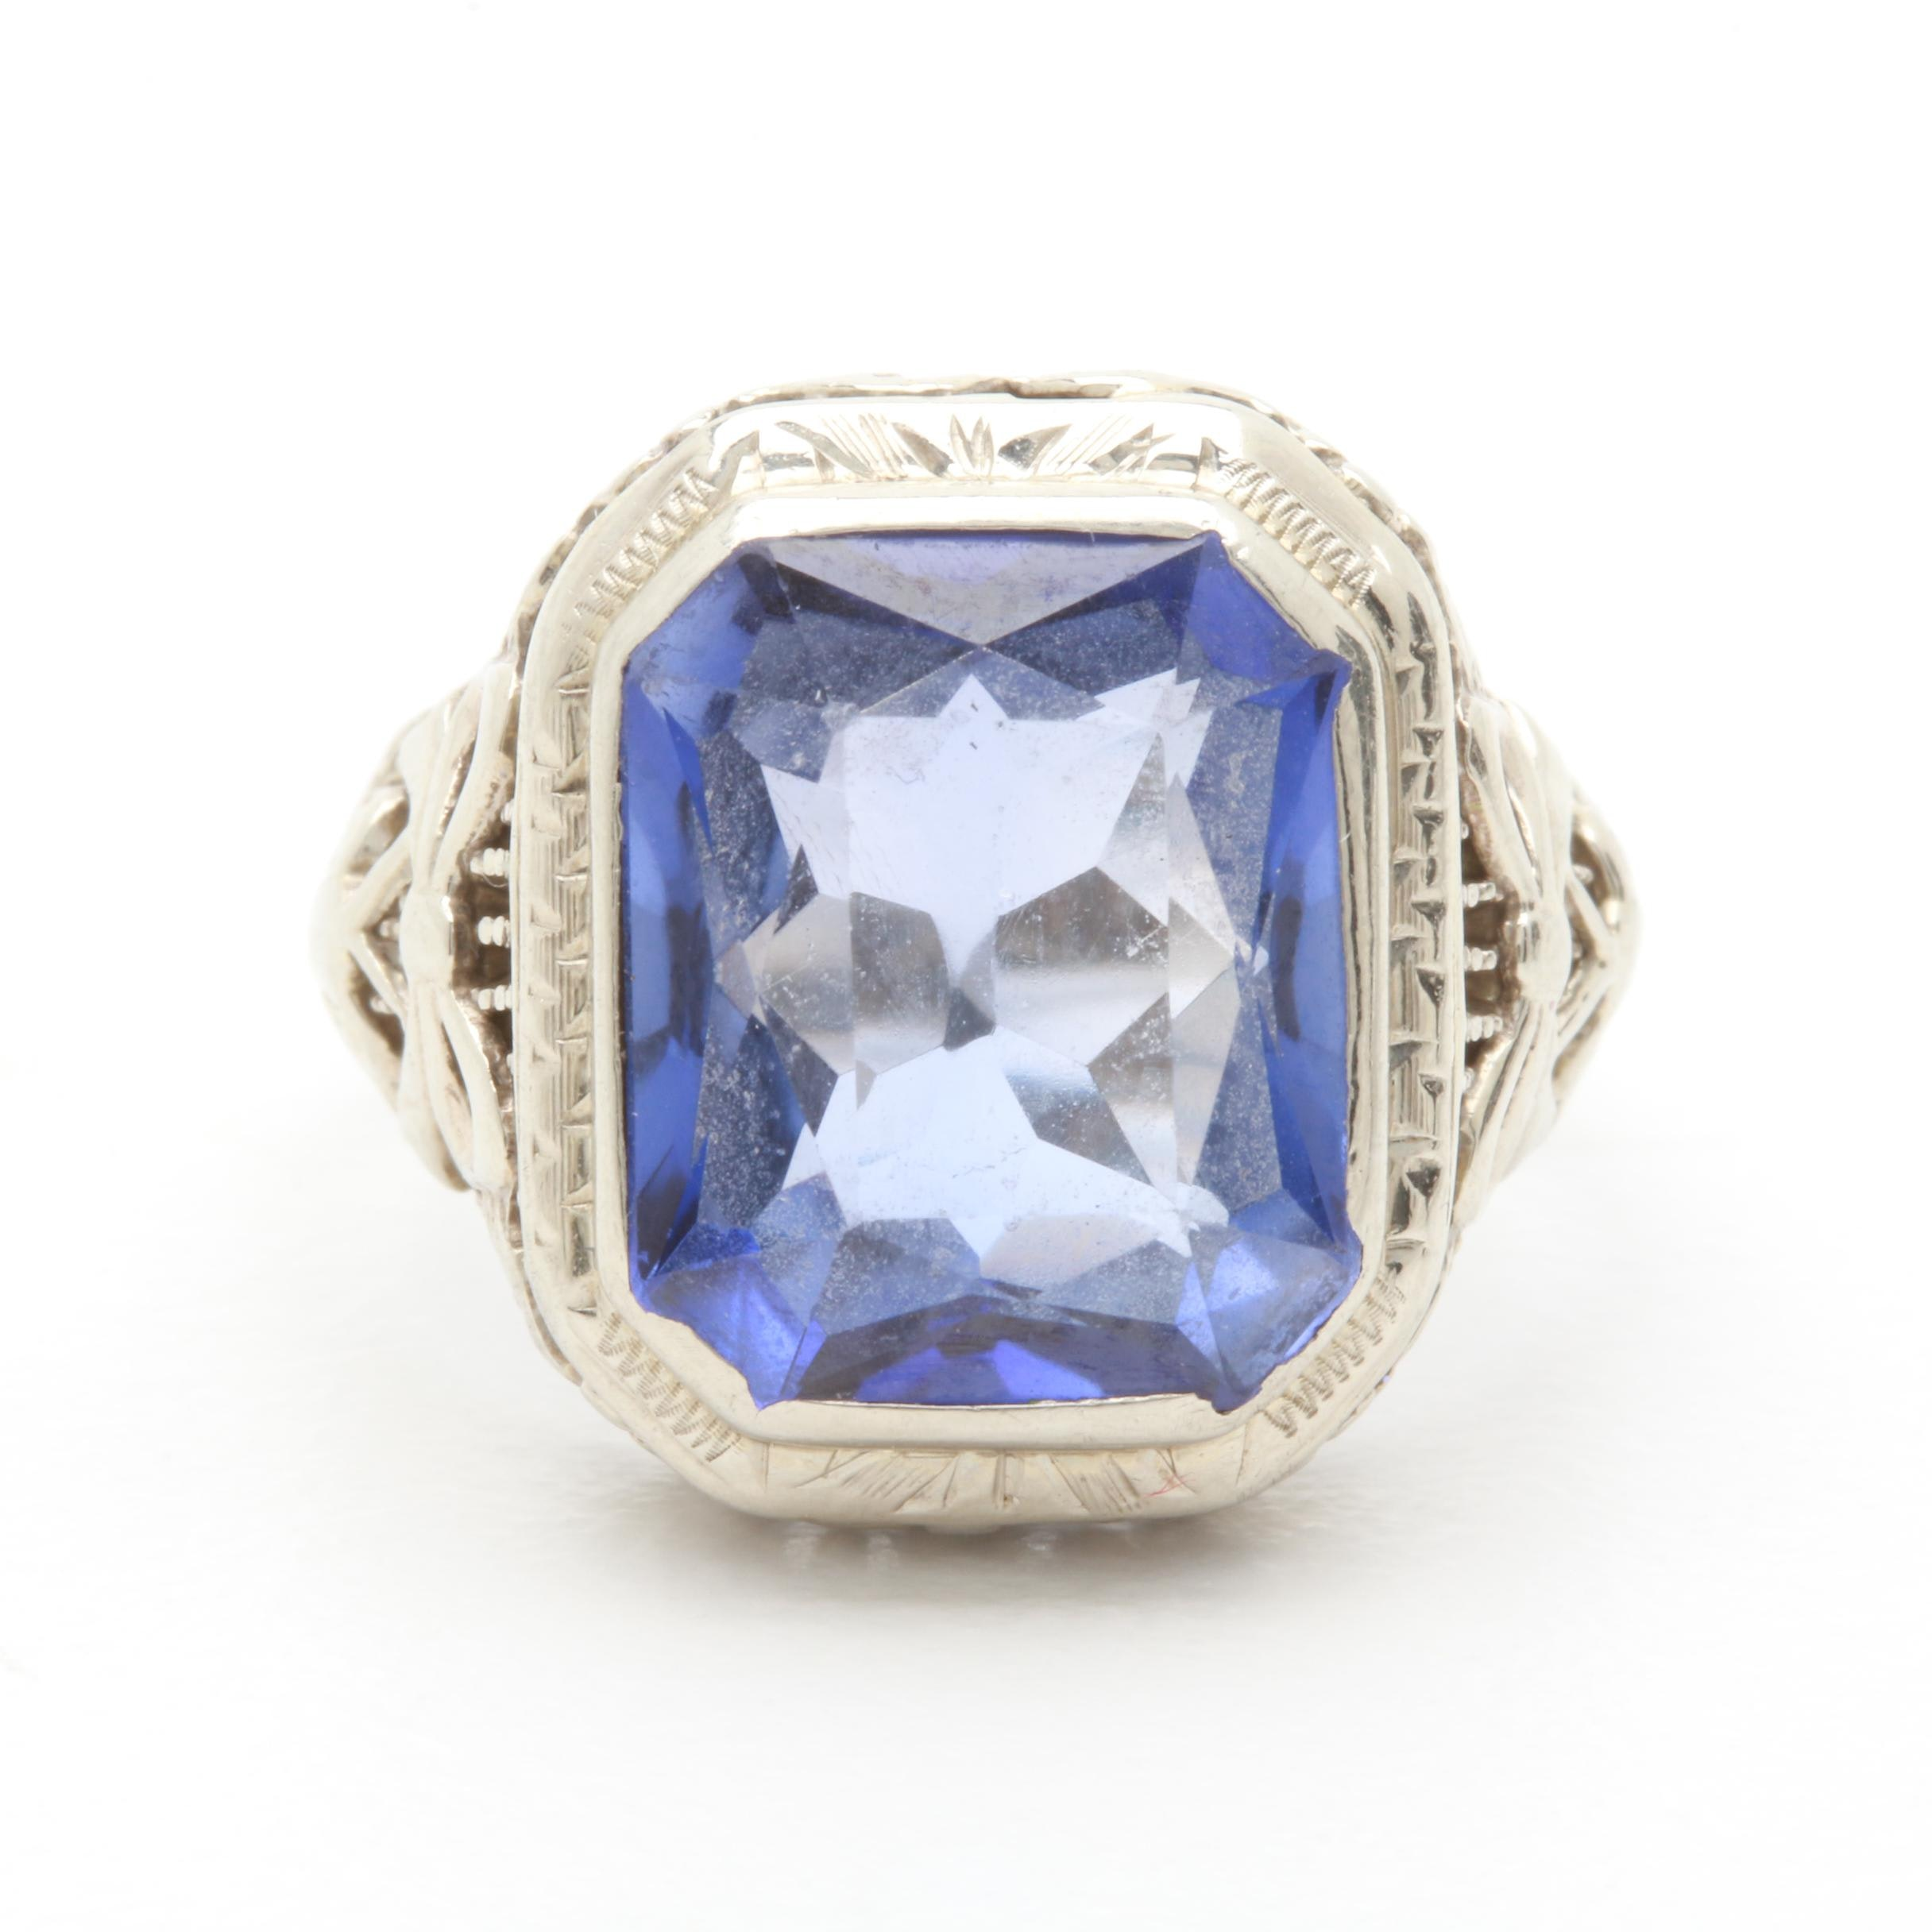 Vintage 14K White Gold Synthetic Blue Sapphire Ring